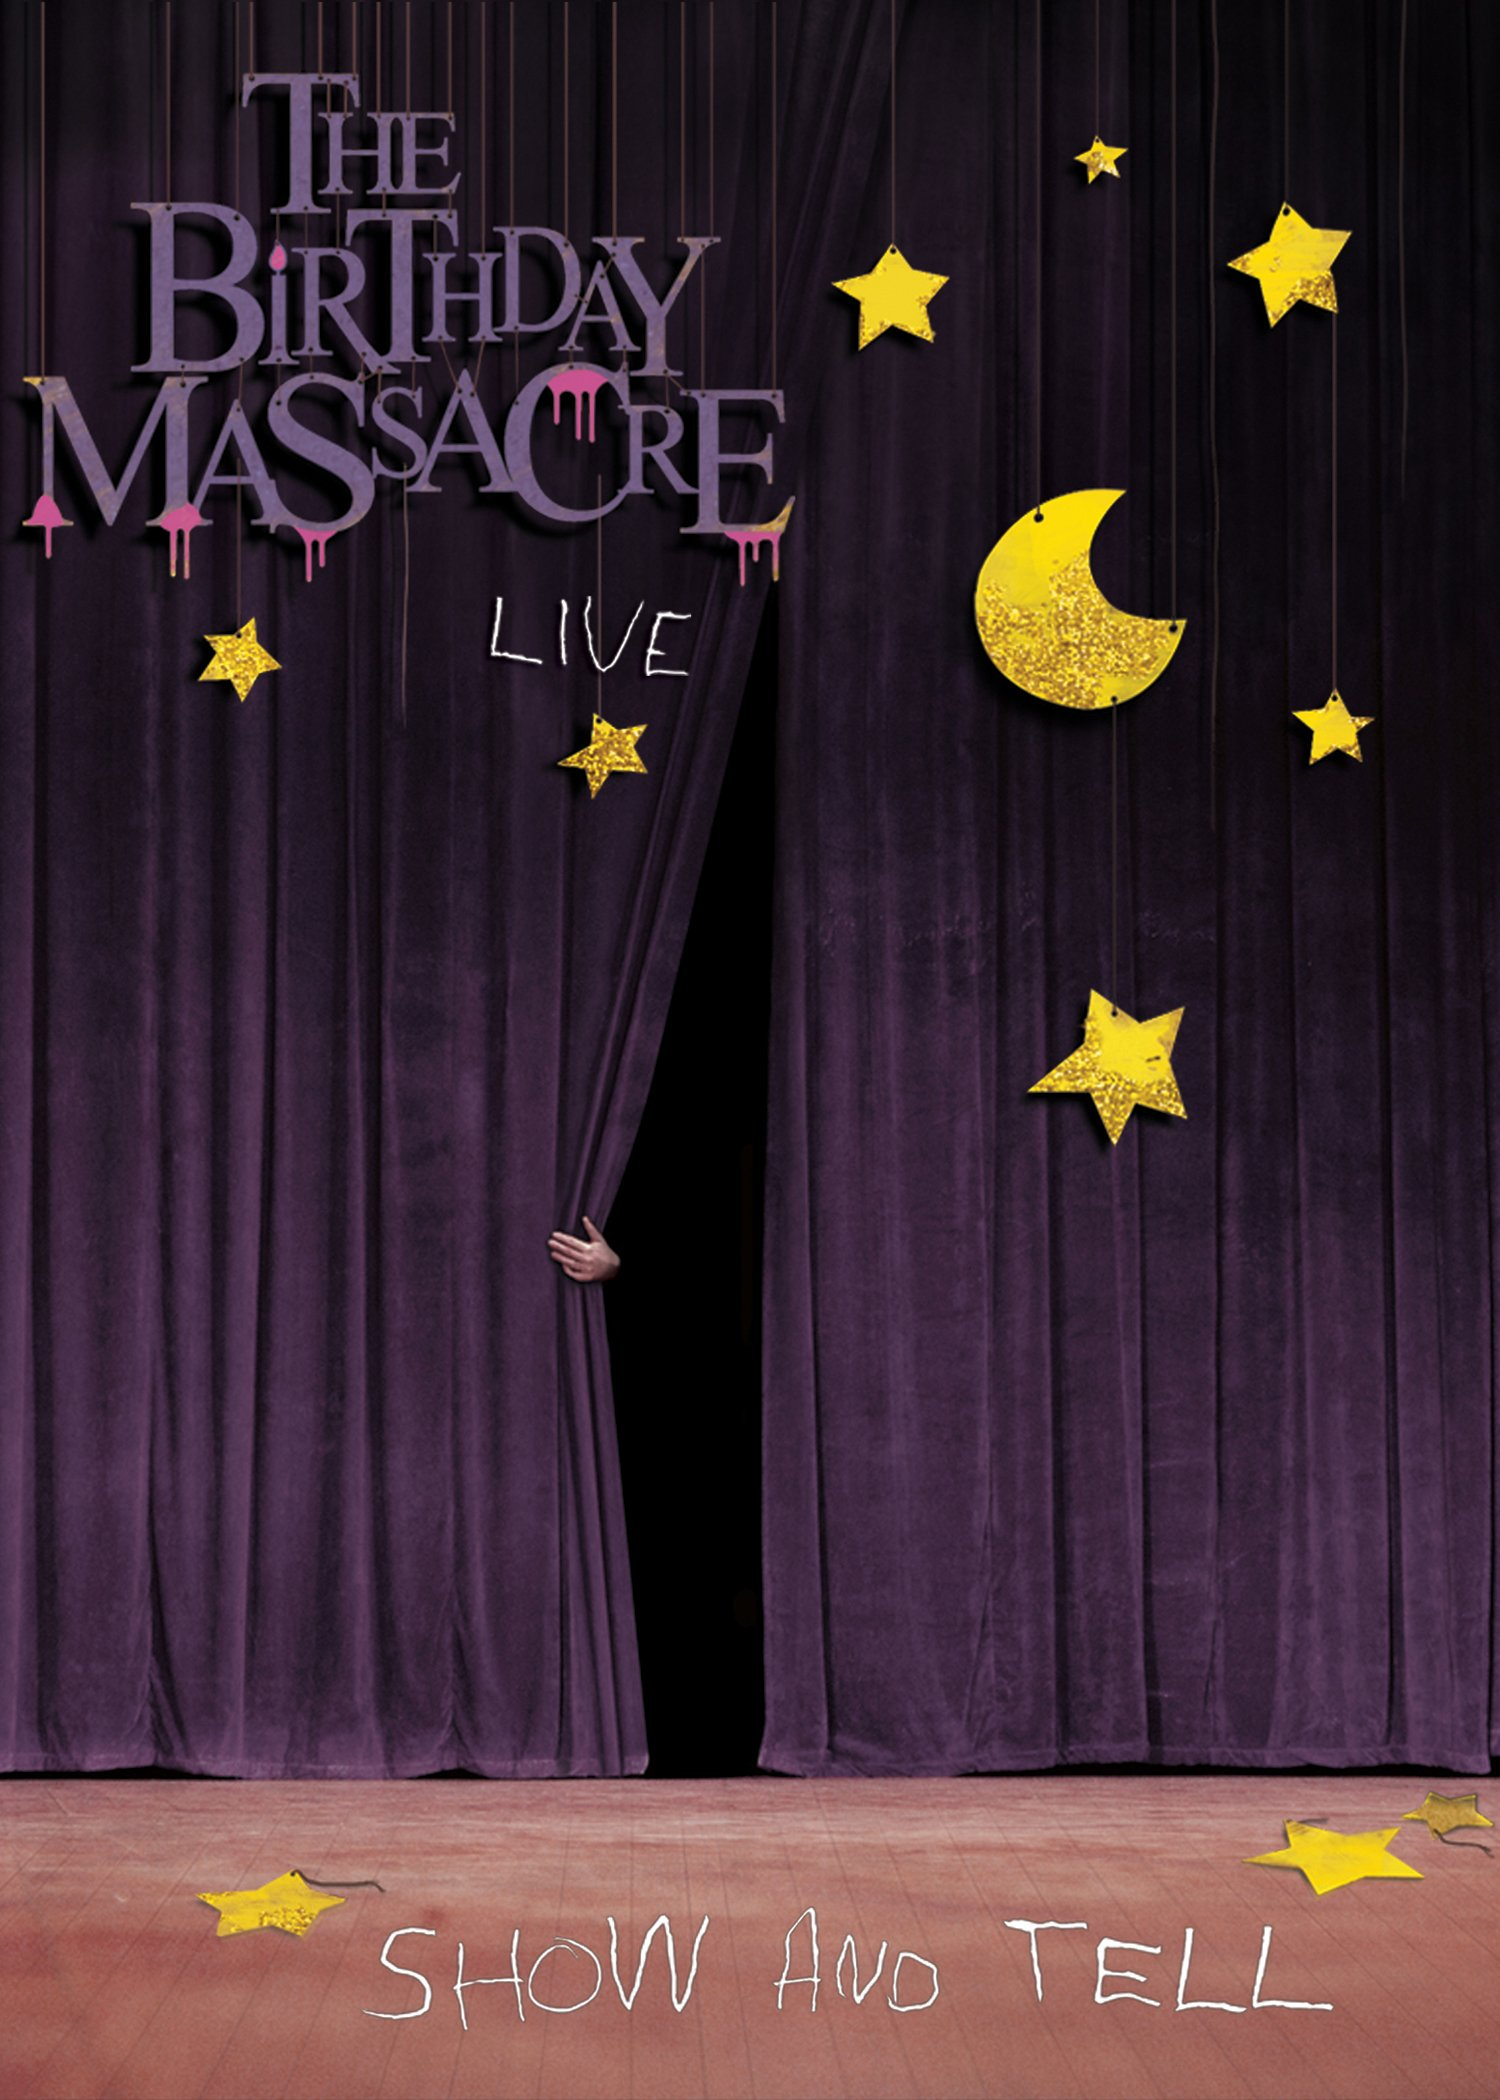 DVD : The Birthday Massacre - Show And Tell (DVD)